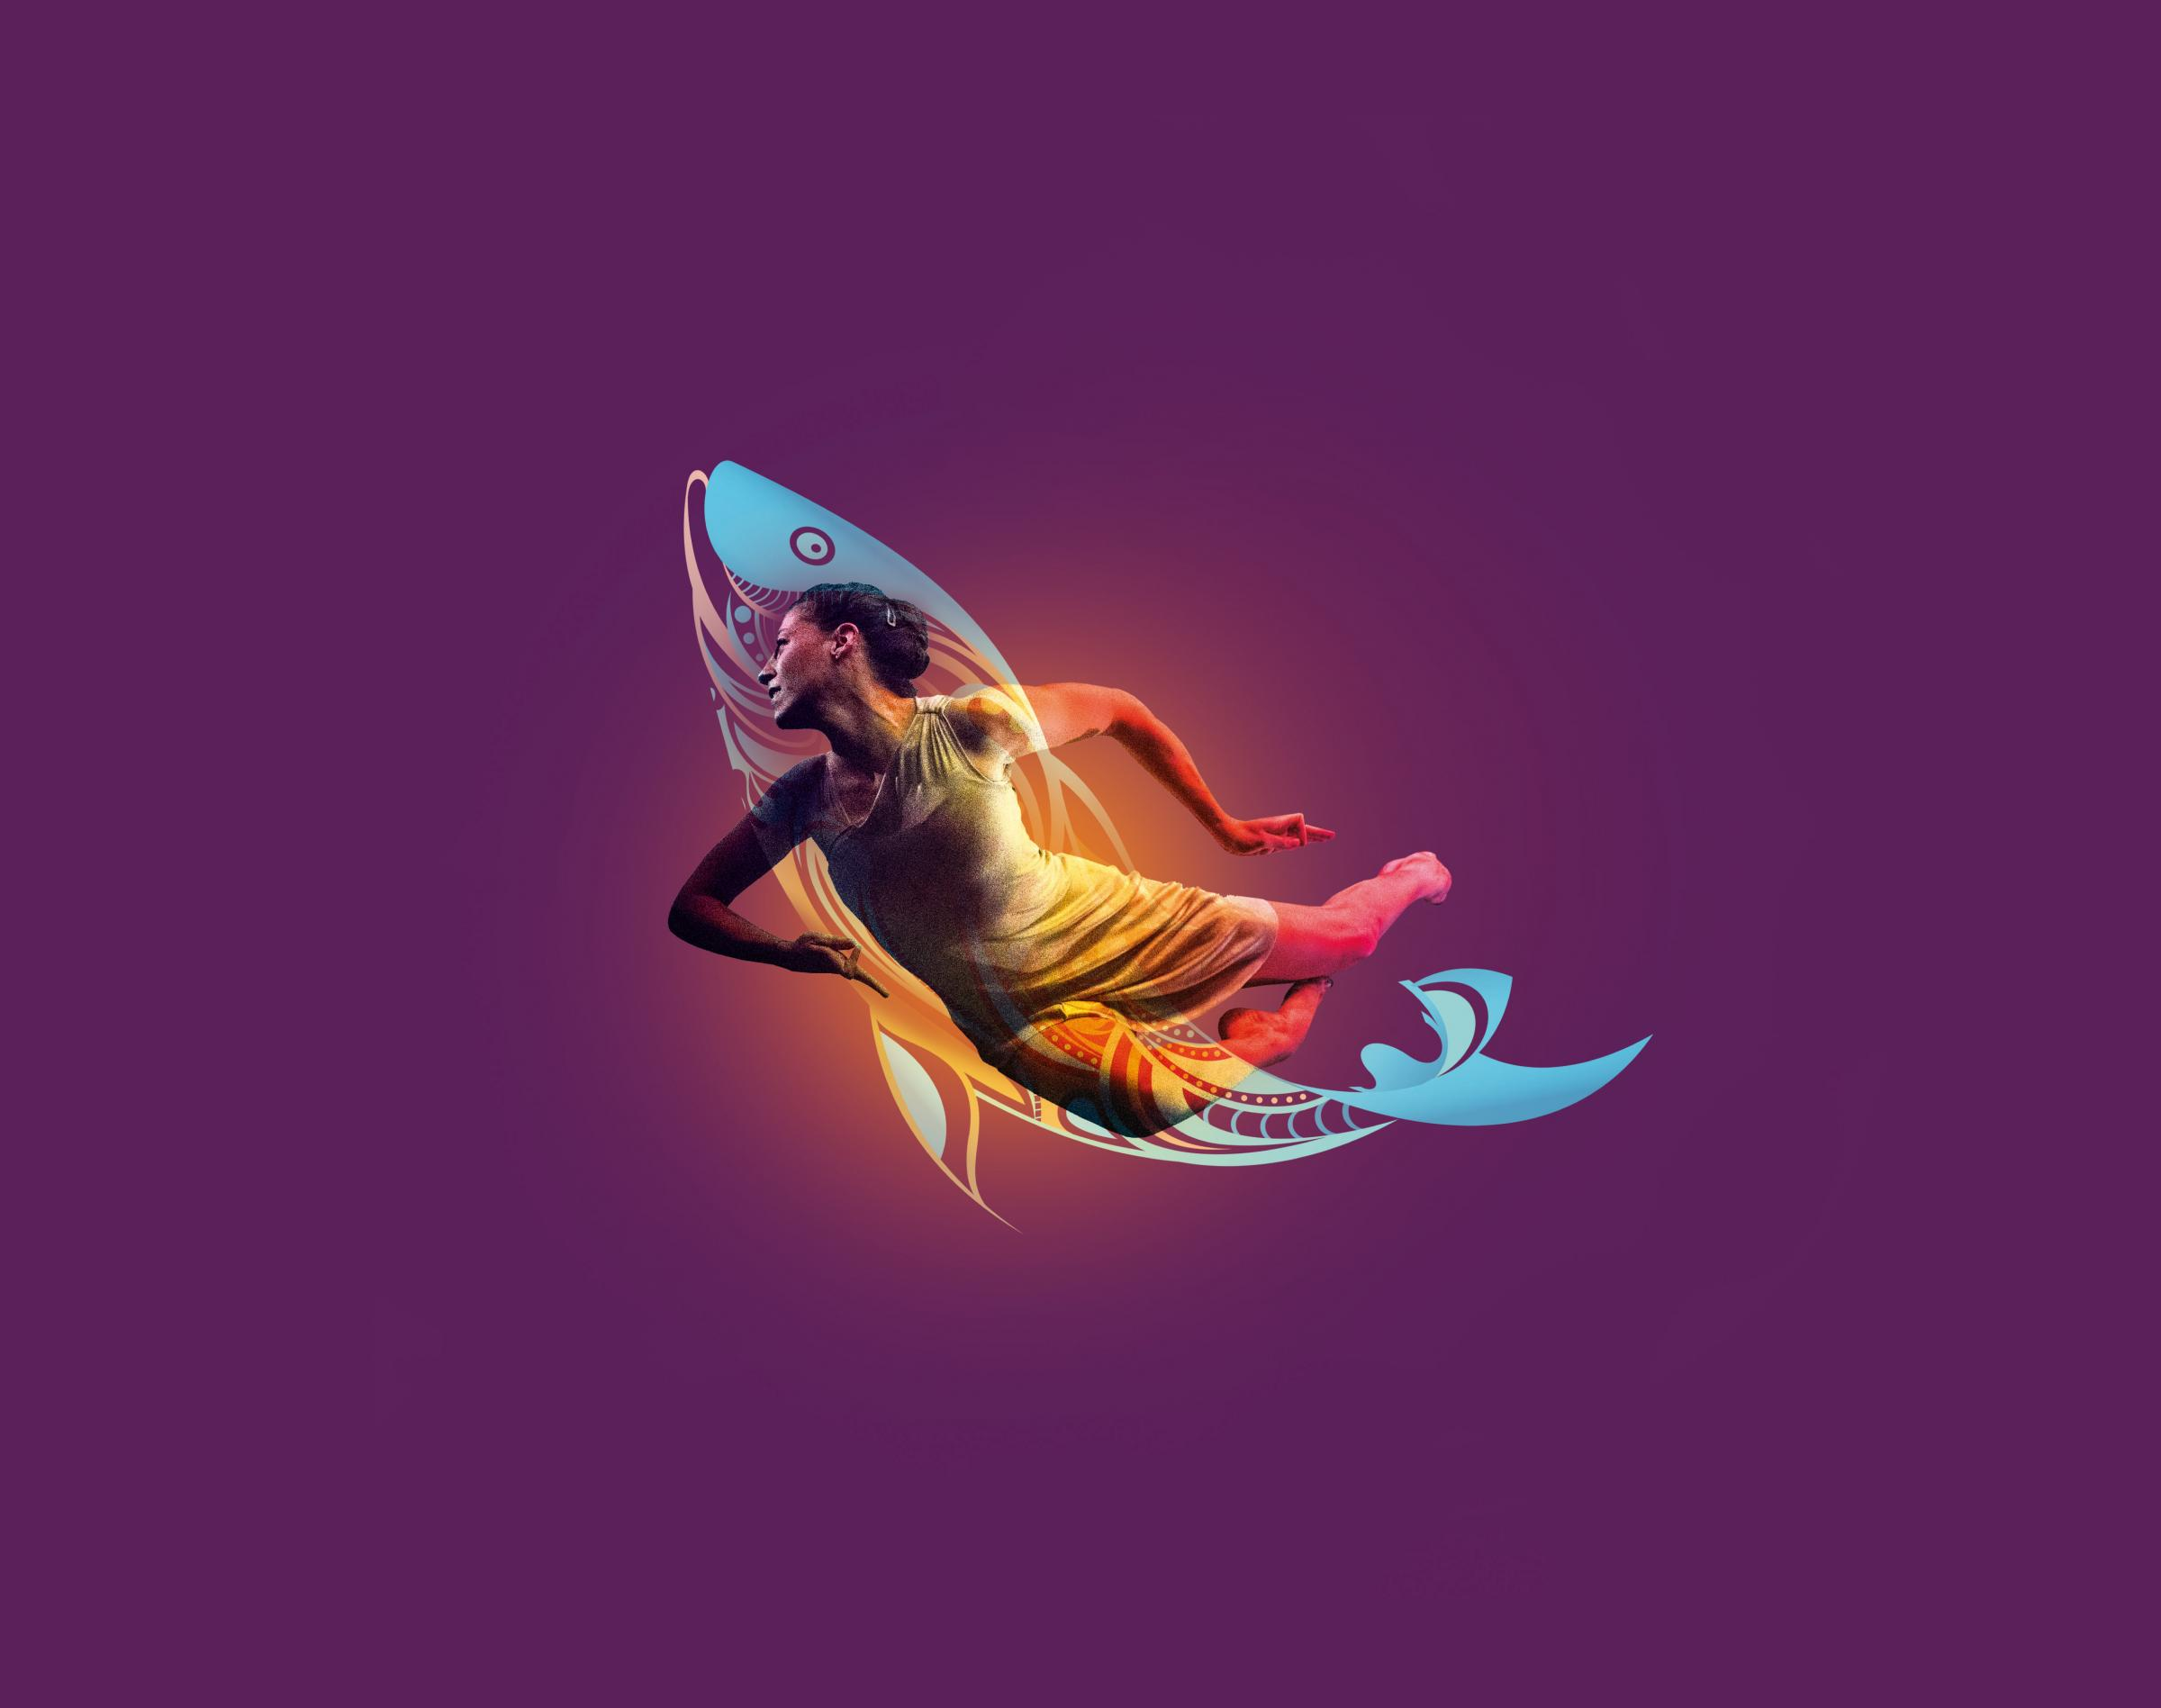 Mini Dance Festival: The Magic Fish